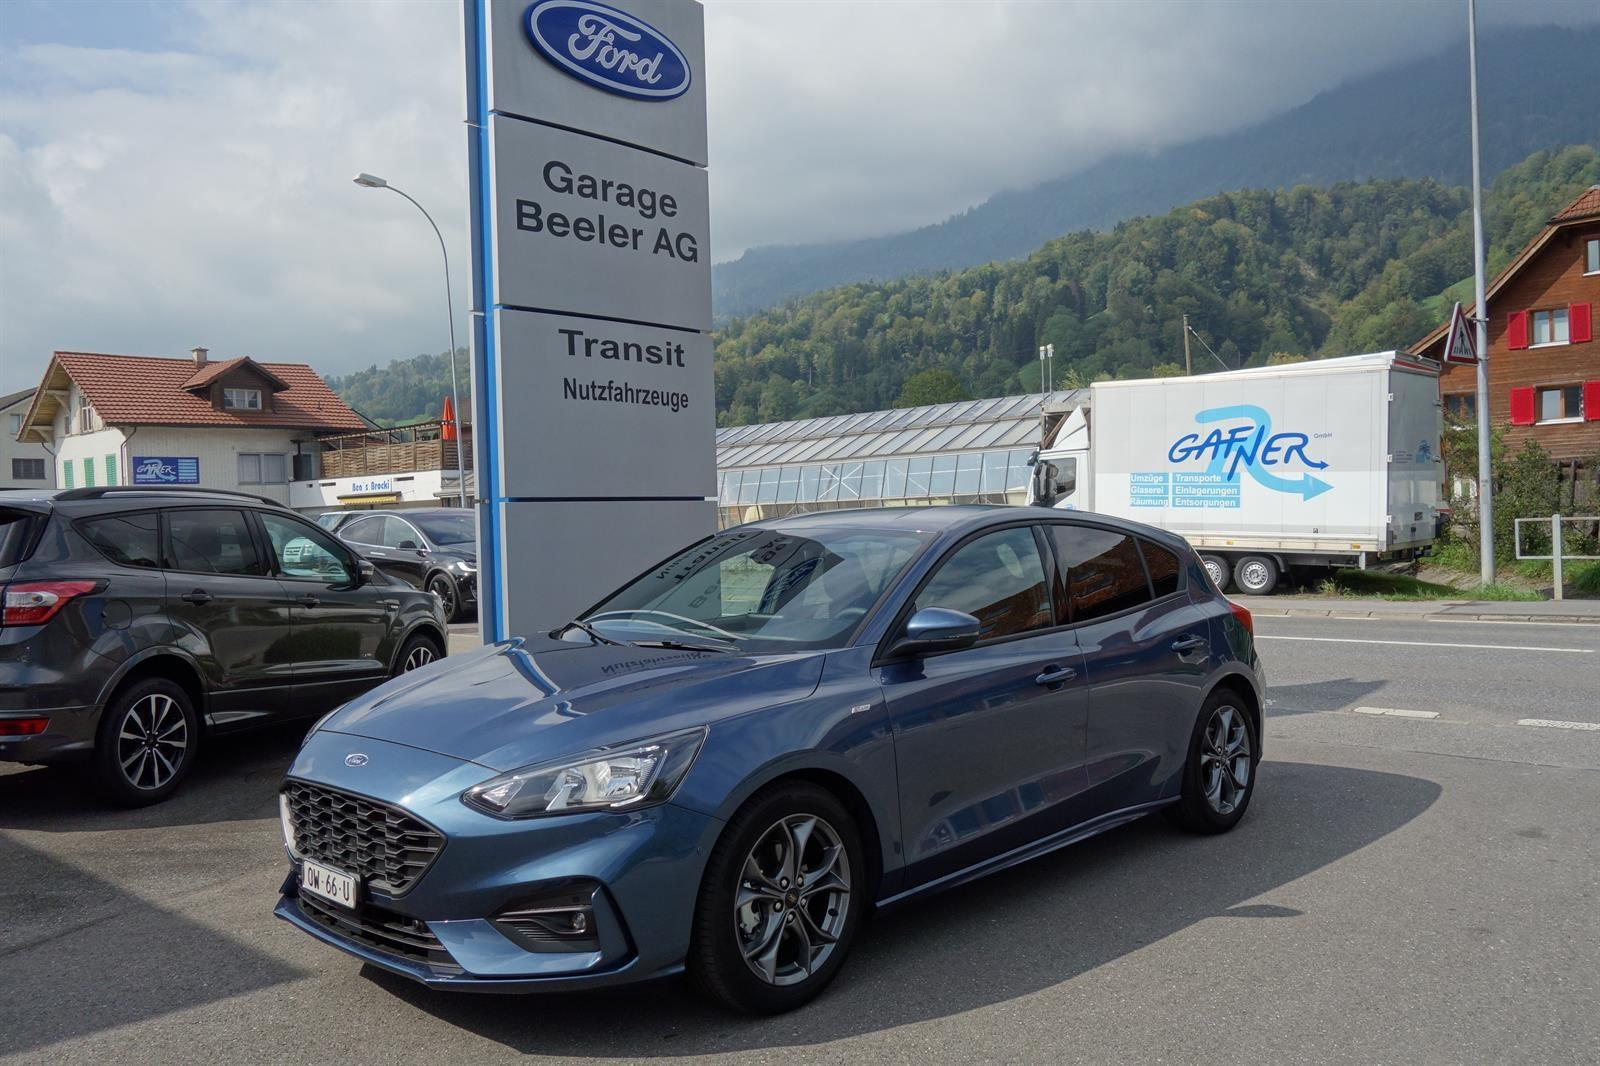 2018 FORD FOCUS 1.0i EcoB 125 ST-Line Chrom blue metallic Garage Beeler AG